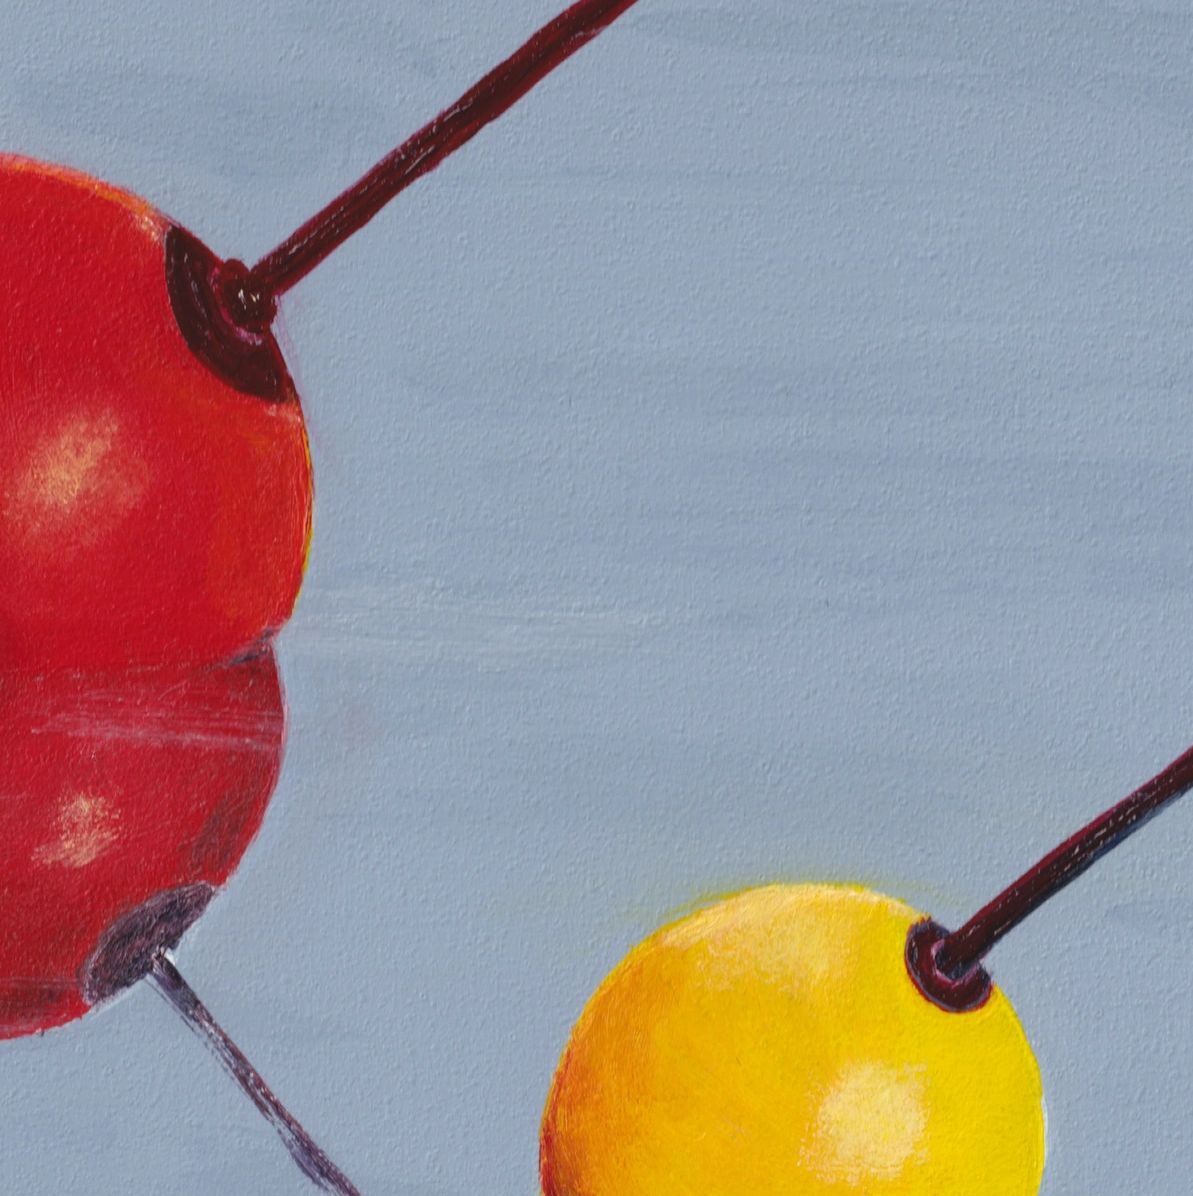 Round Buoys© Acrylic Painting by Darlene G. of 3 bright round buoys floating suggest tied to boats